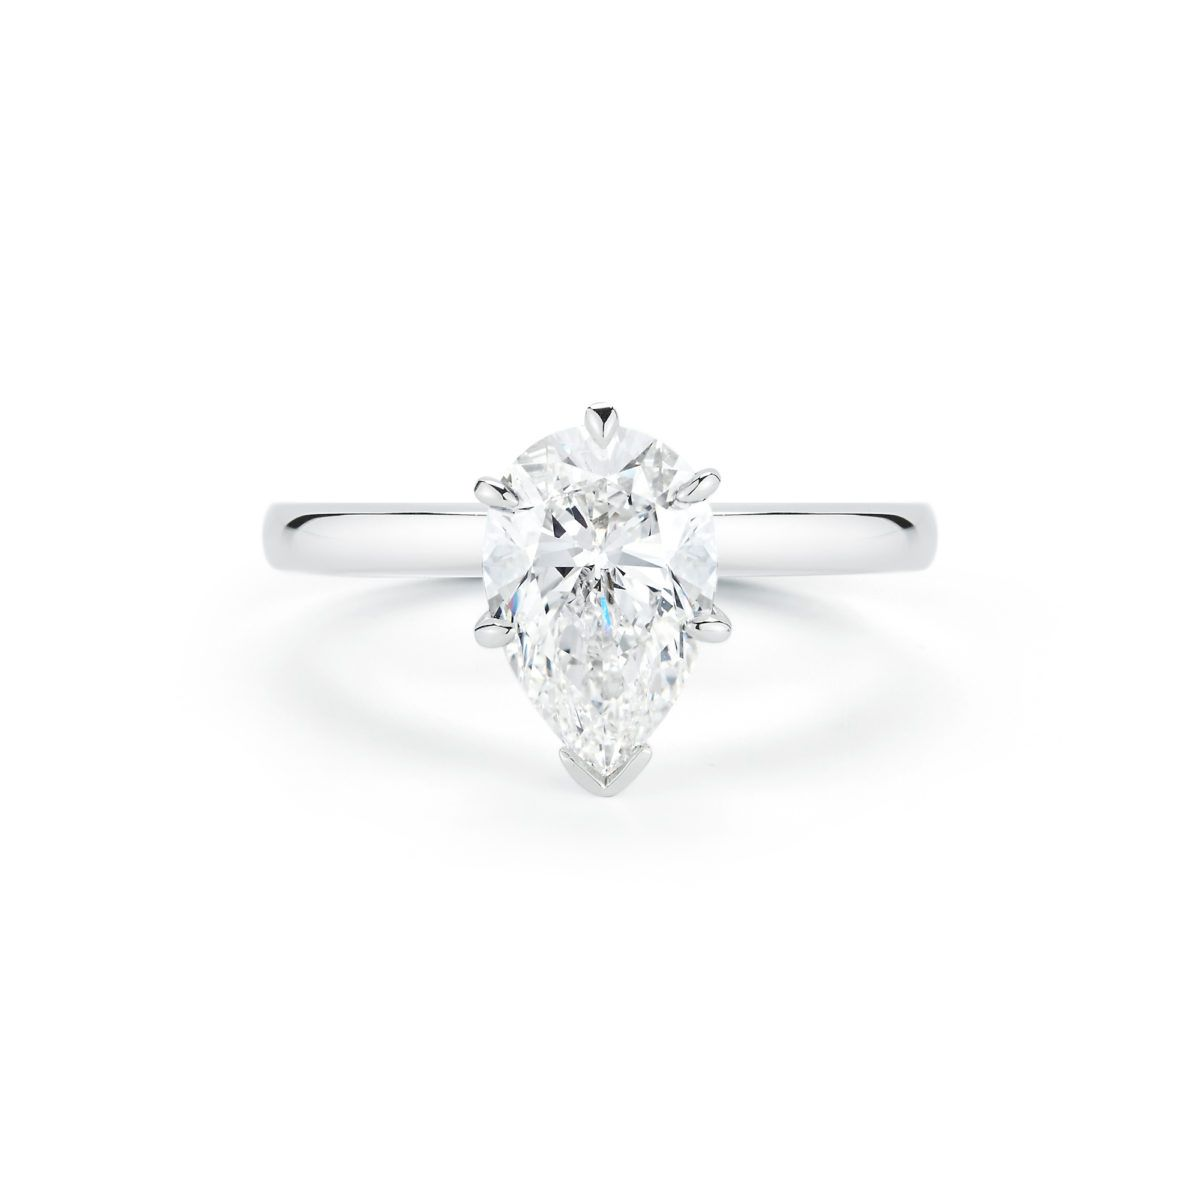 Pear Shape Solitaire Engagement Ring Priced From 5000 Marsh Diamond Solitaire Engagement Ring Solitaire Engagement Ring Settings Oval Diamond Engagement Ring